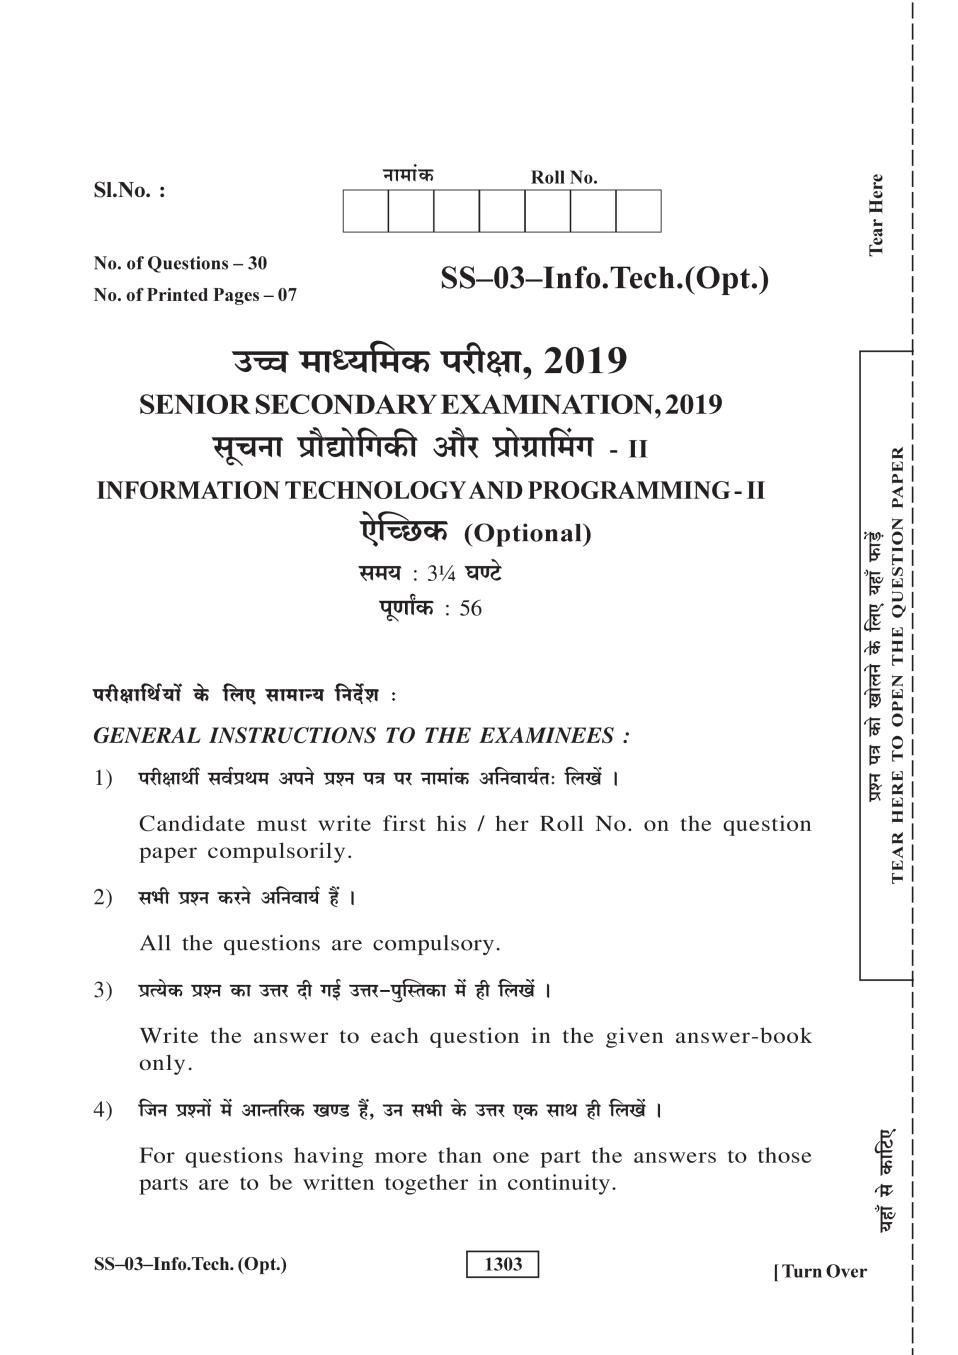 Rajasthan Board Sr. Secondary Information Technology and Programming Question Paper